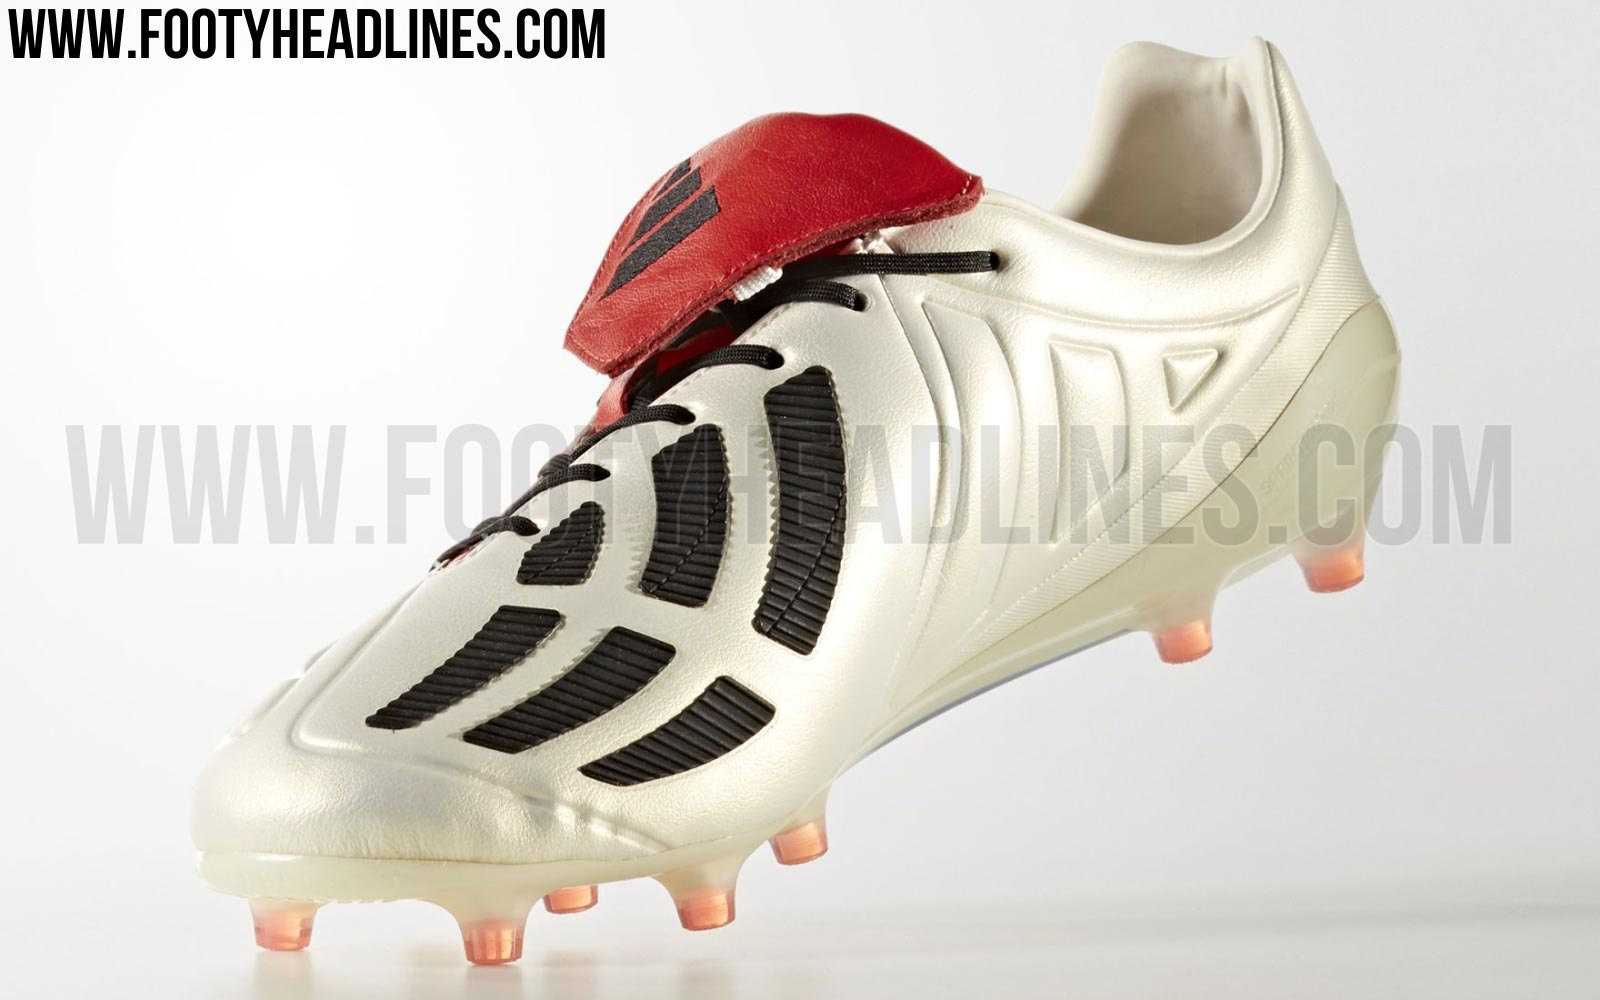 adidas predator mania champagne 2017 boots revealed. Black Bedroom Furniture Sets. Home Design Ideas